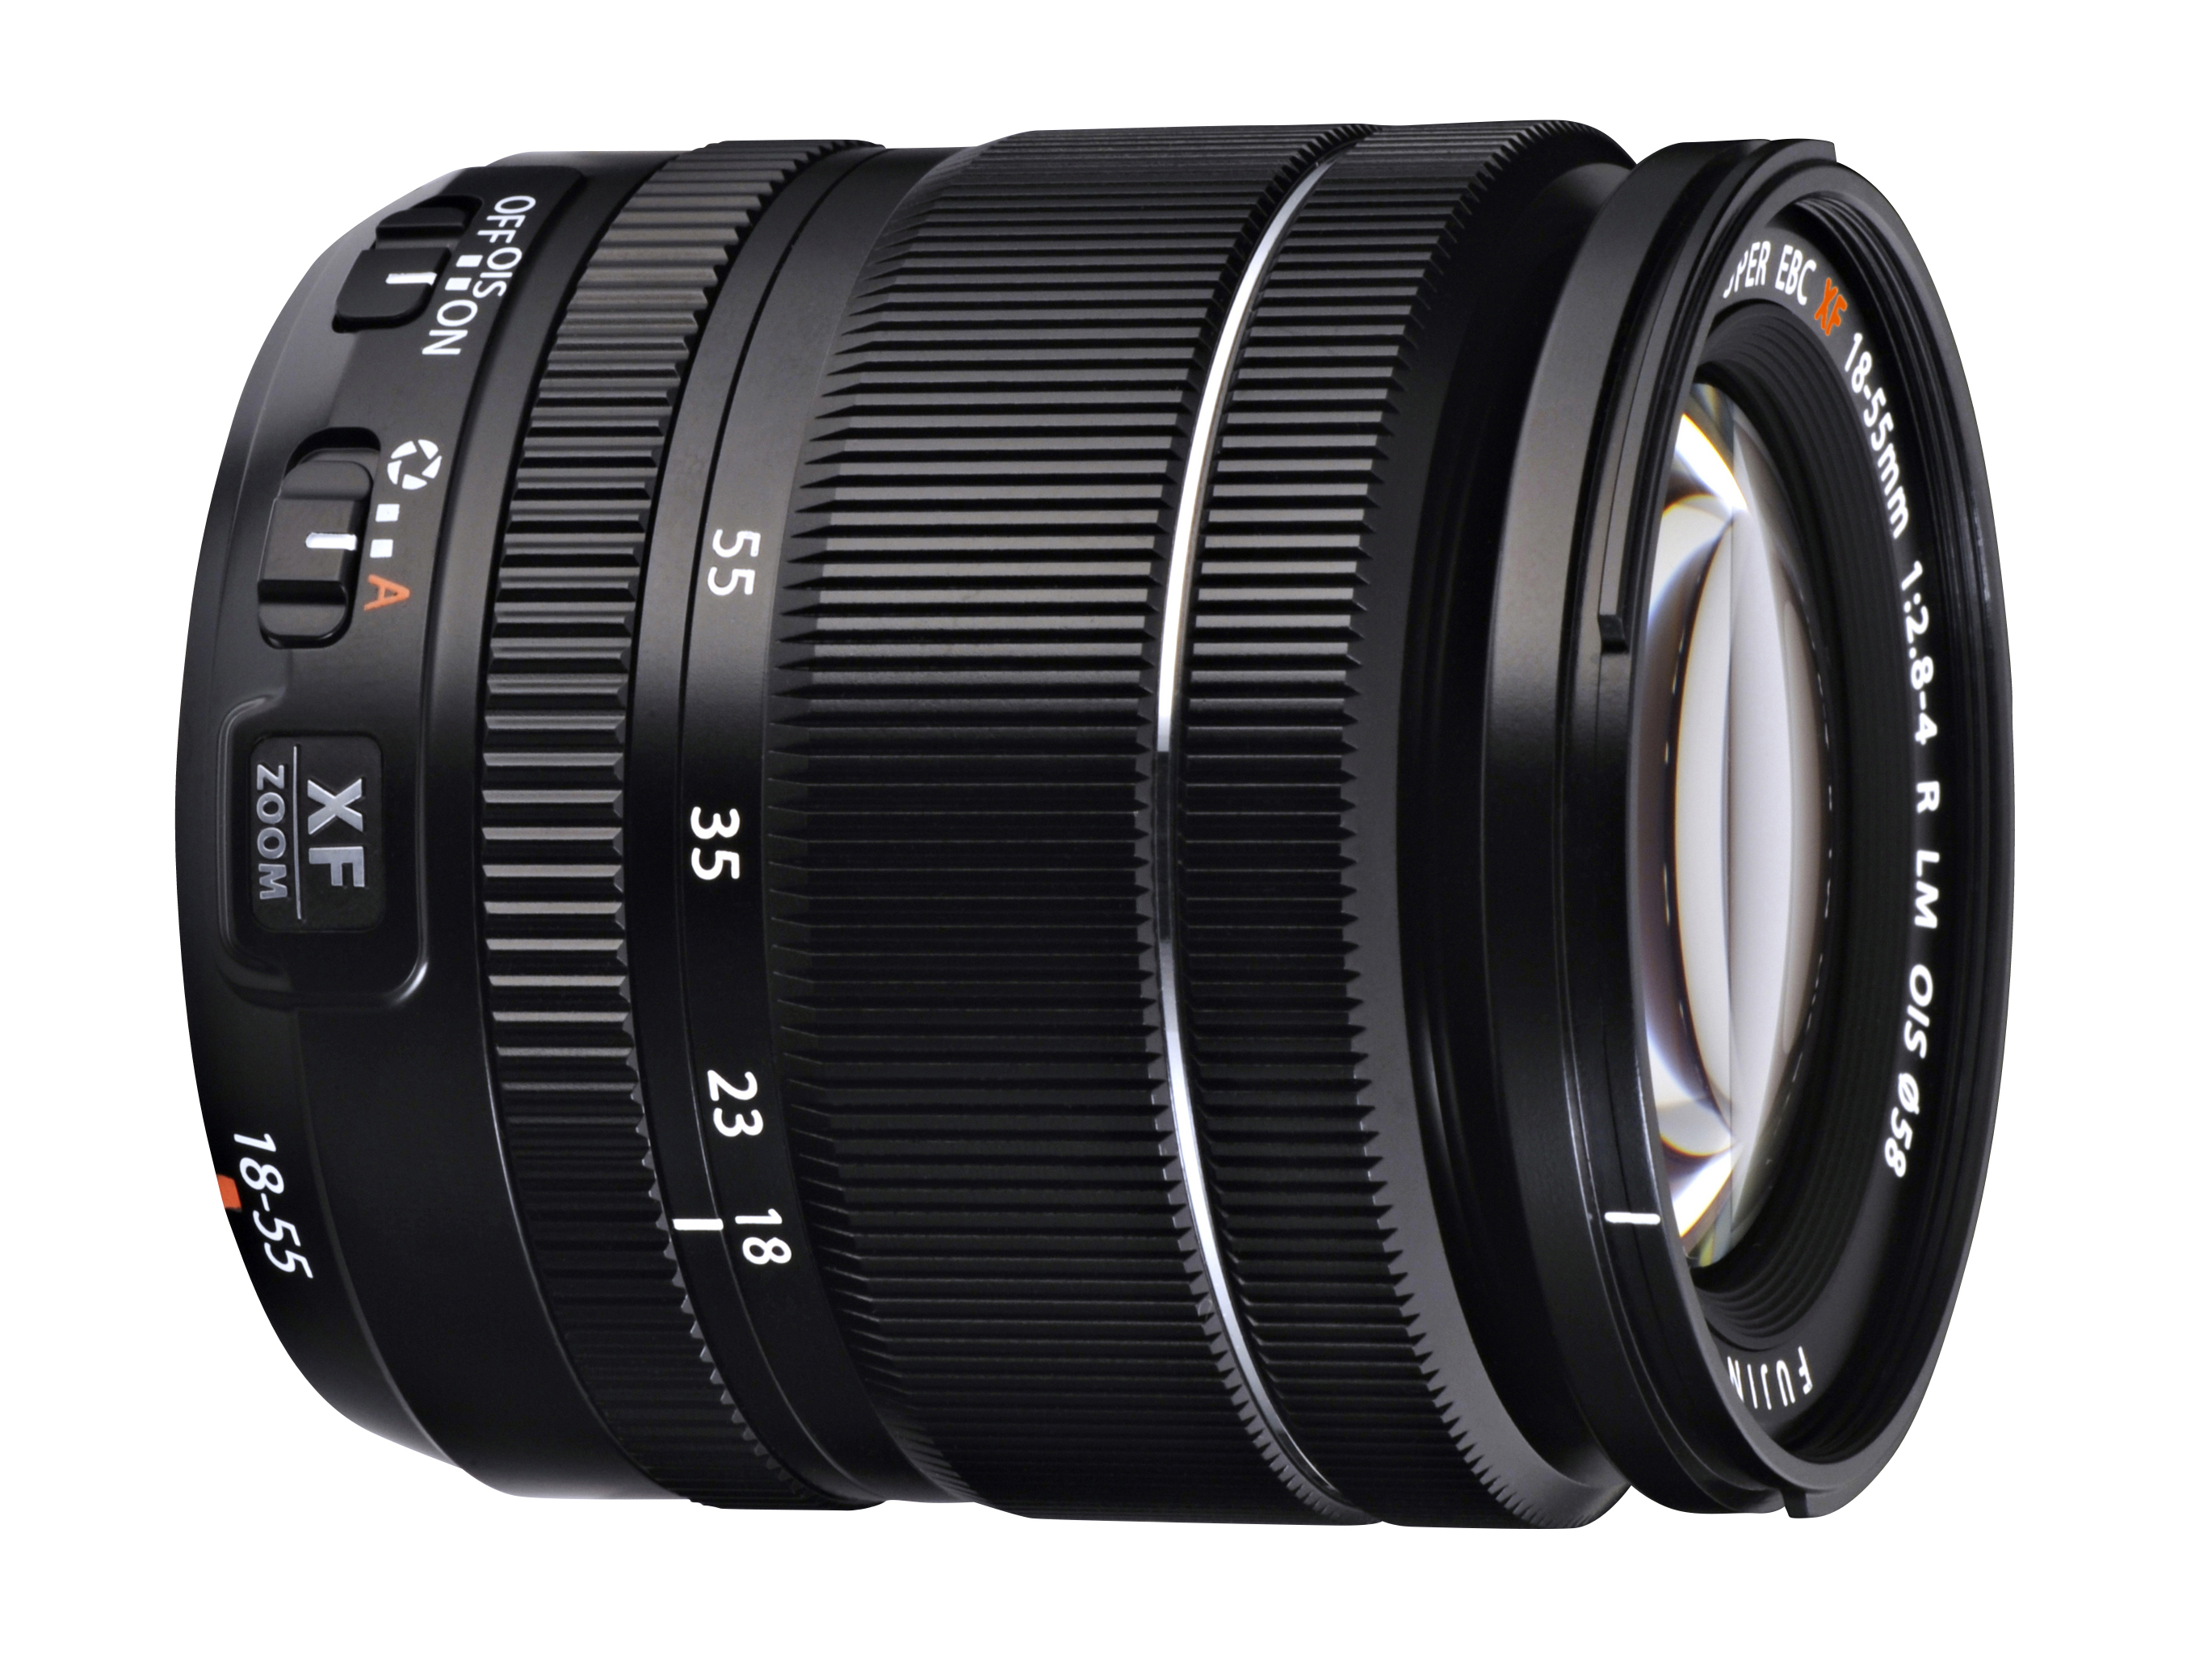 How image stabilization modes effect sharpness | Fuji X Forum